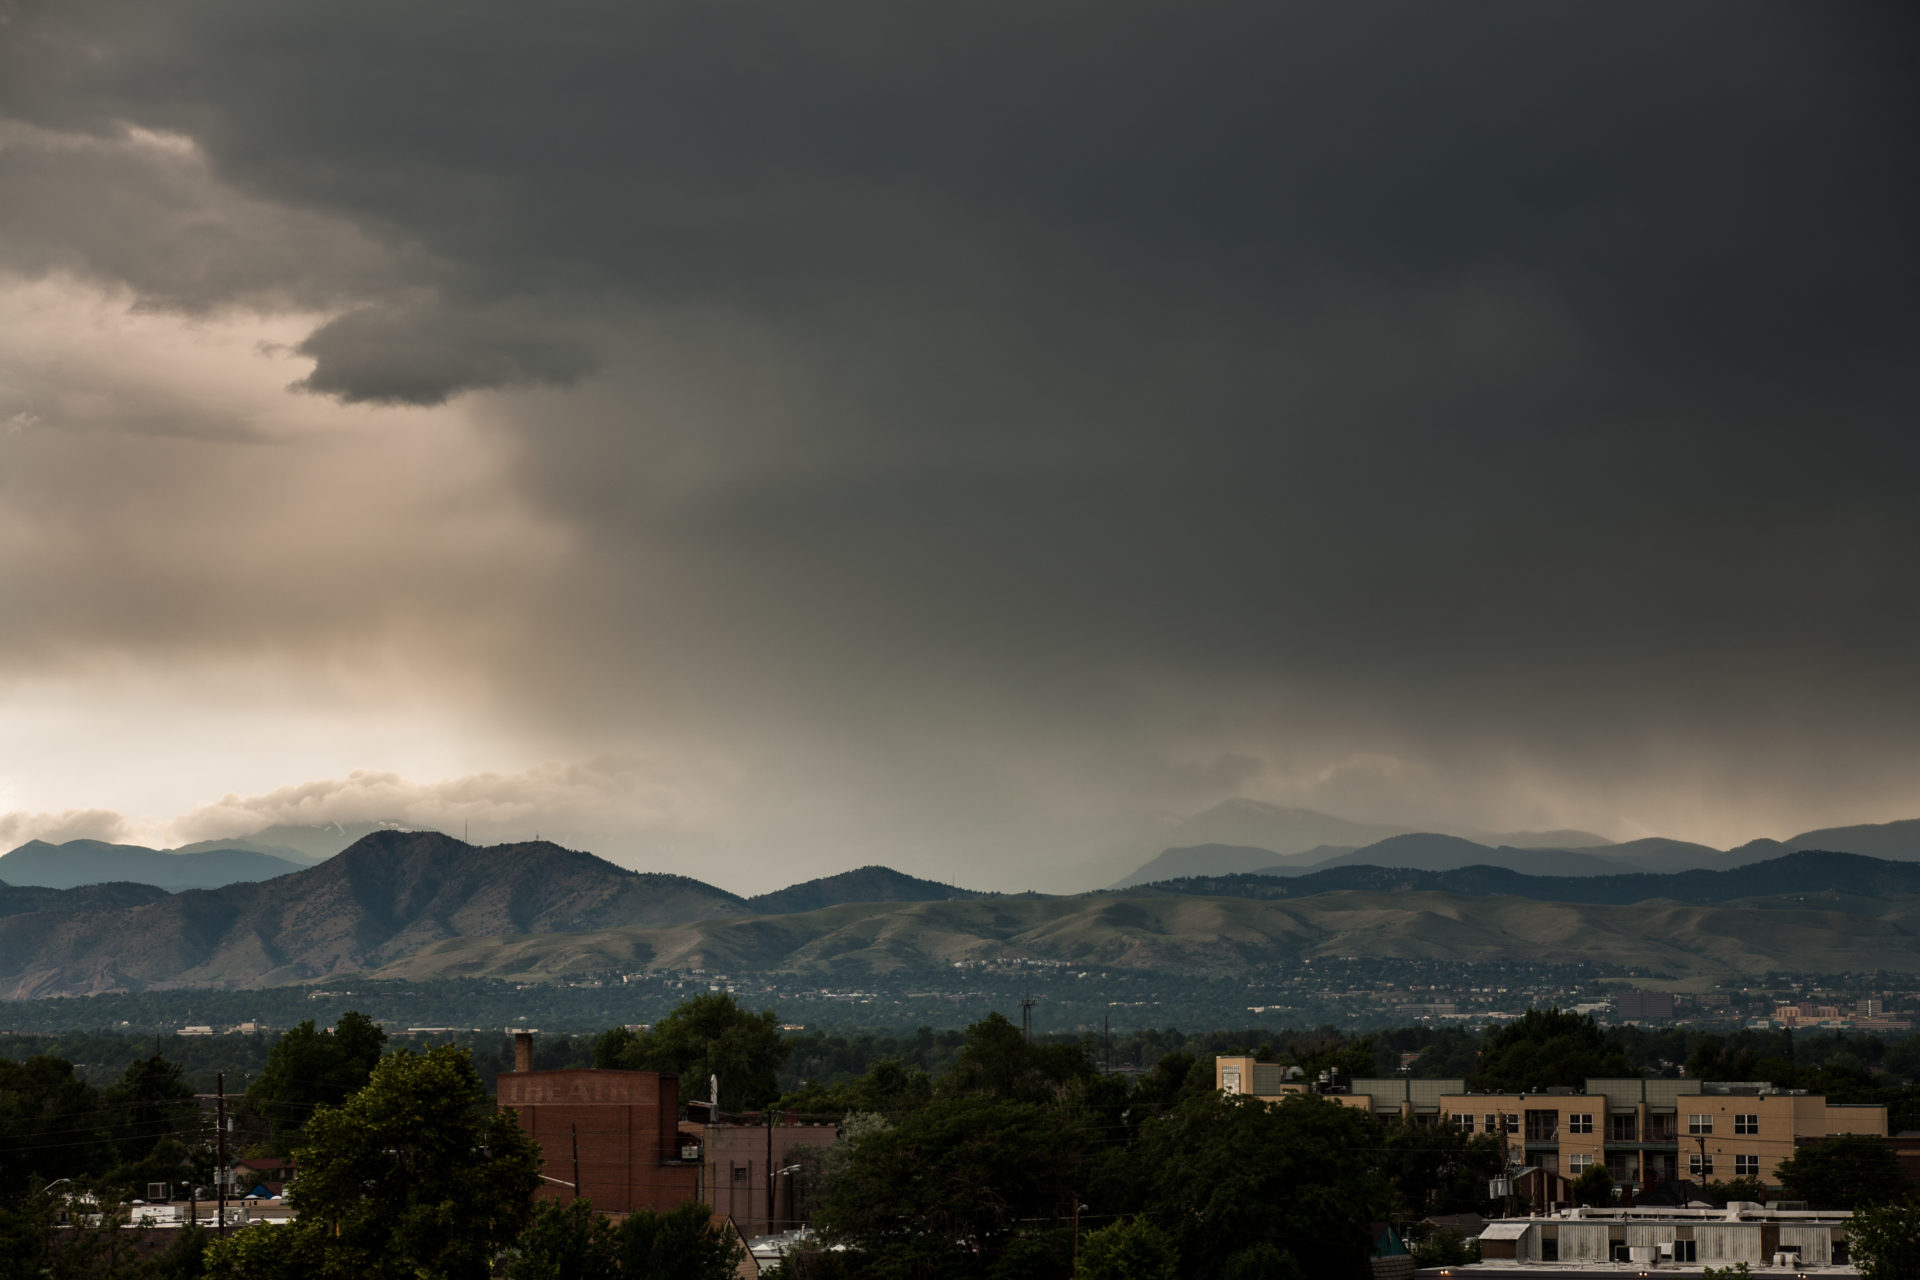 Mount Evans partially obscured - July 9, 2011